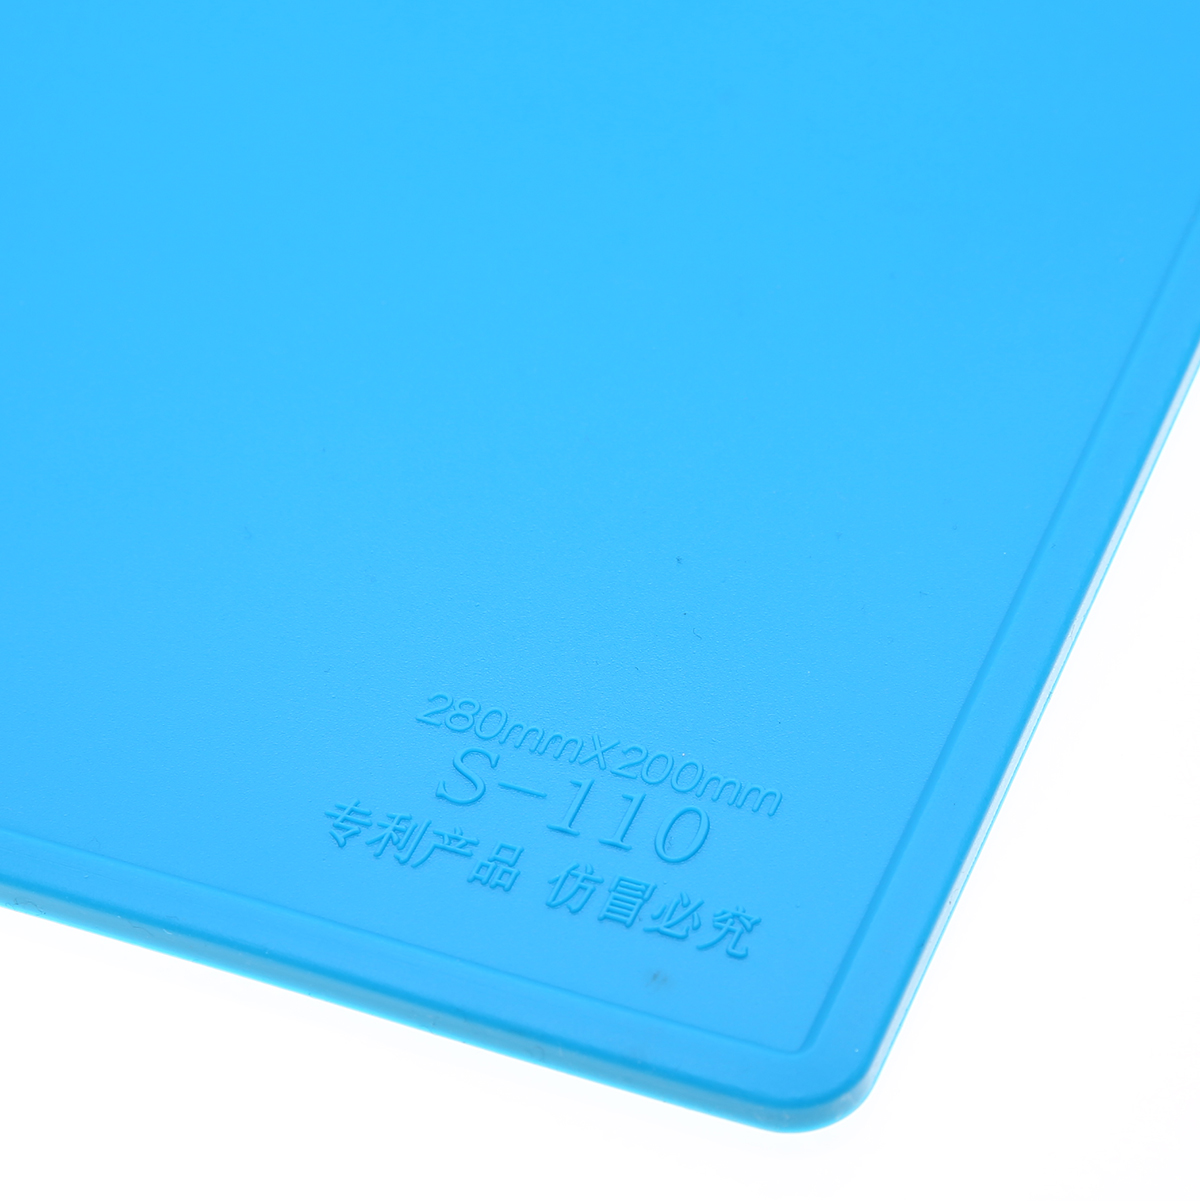 1pc Silicone Soldering Pad Heat-resistant Hot Gun BGA Solder Mat Repair Maintenance Platform Repair Tool